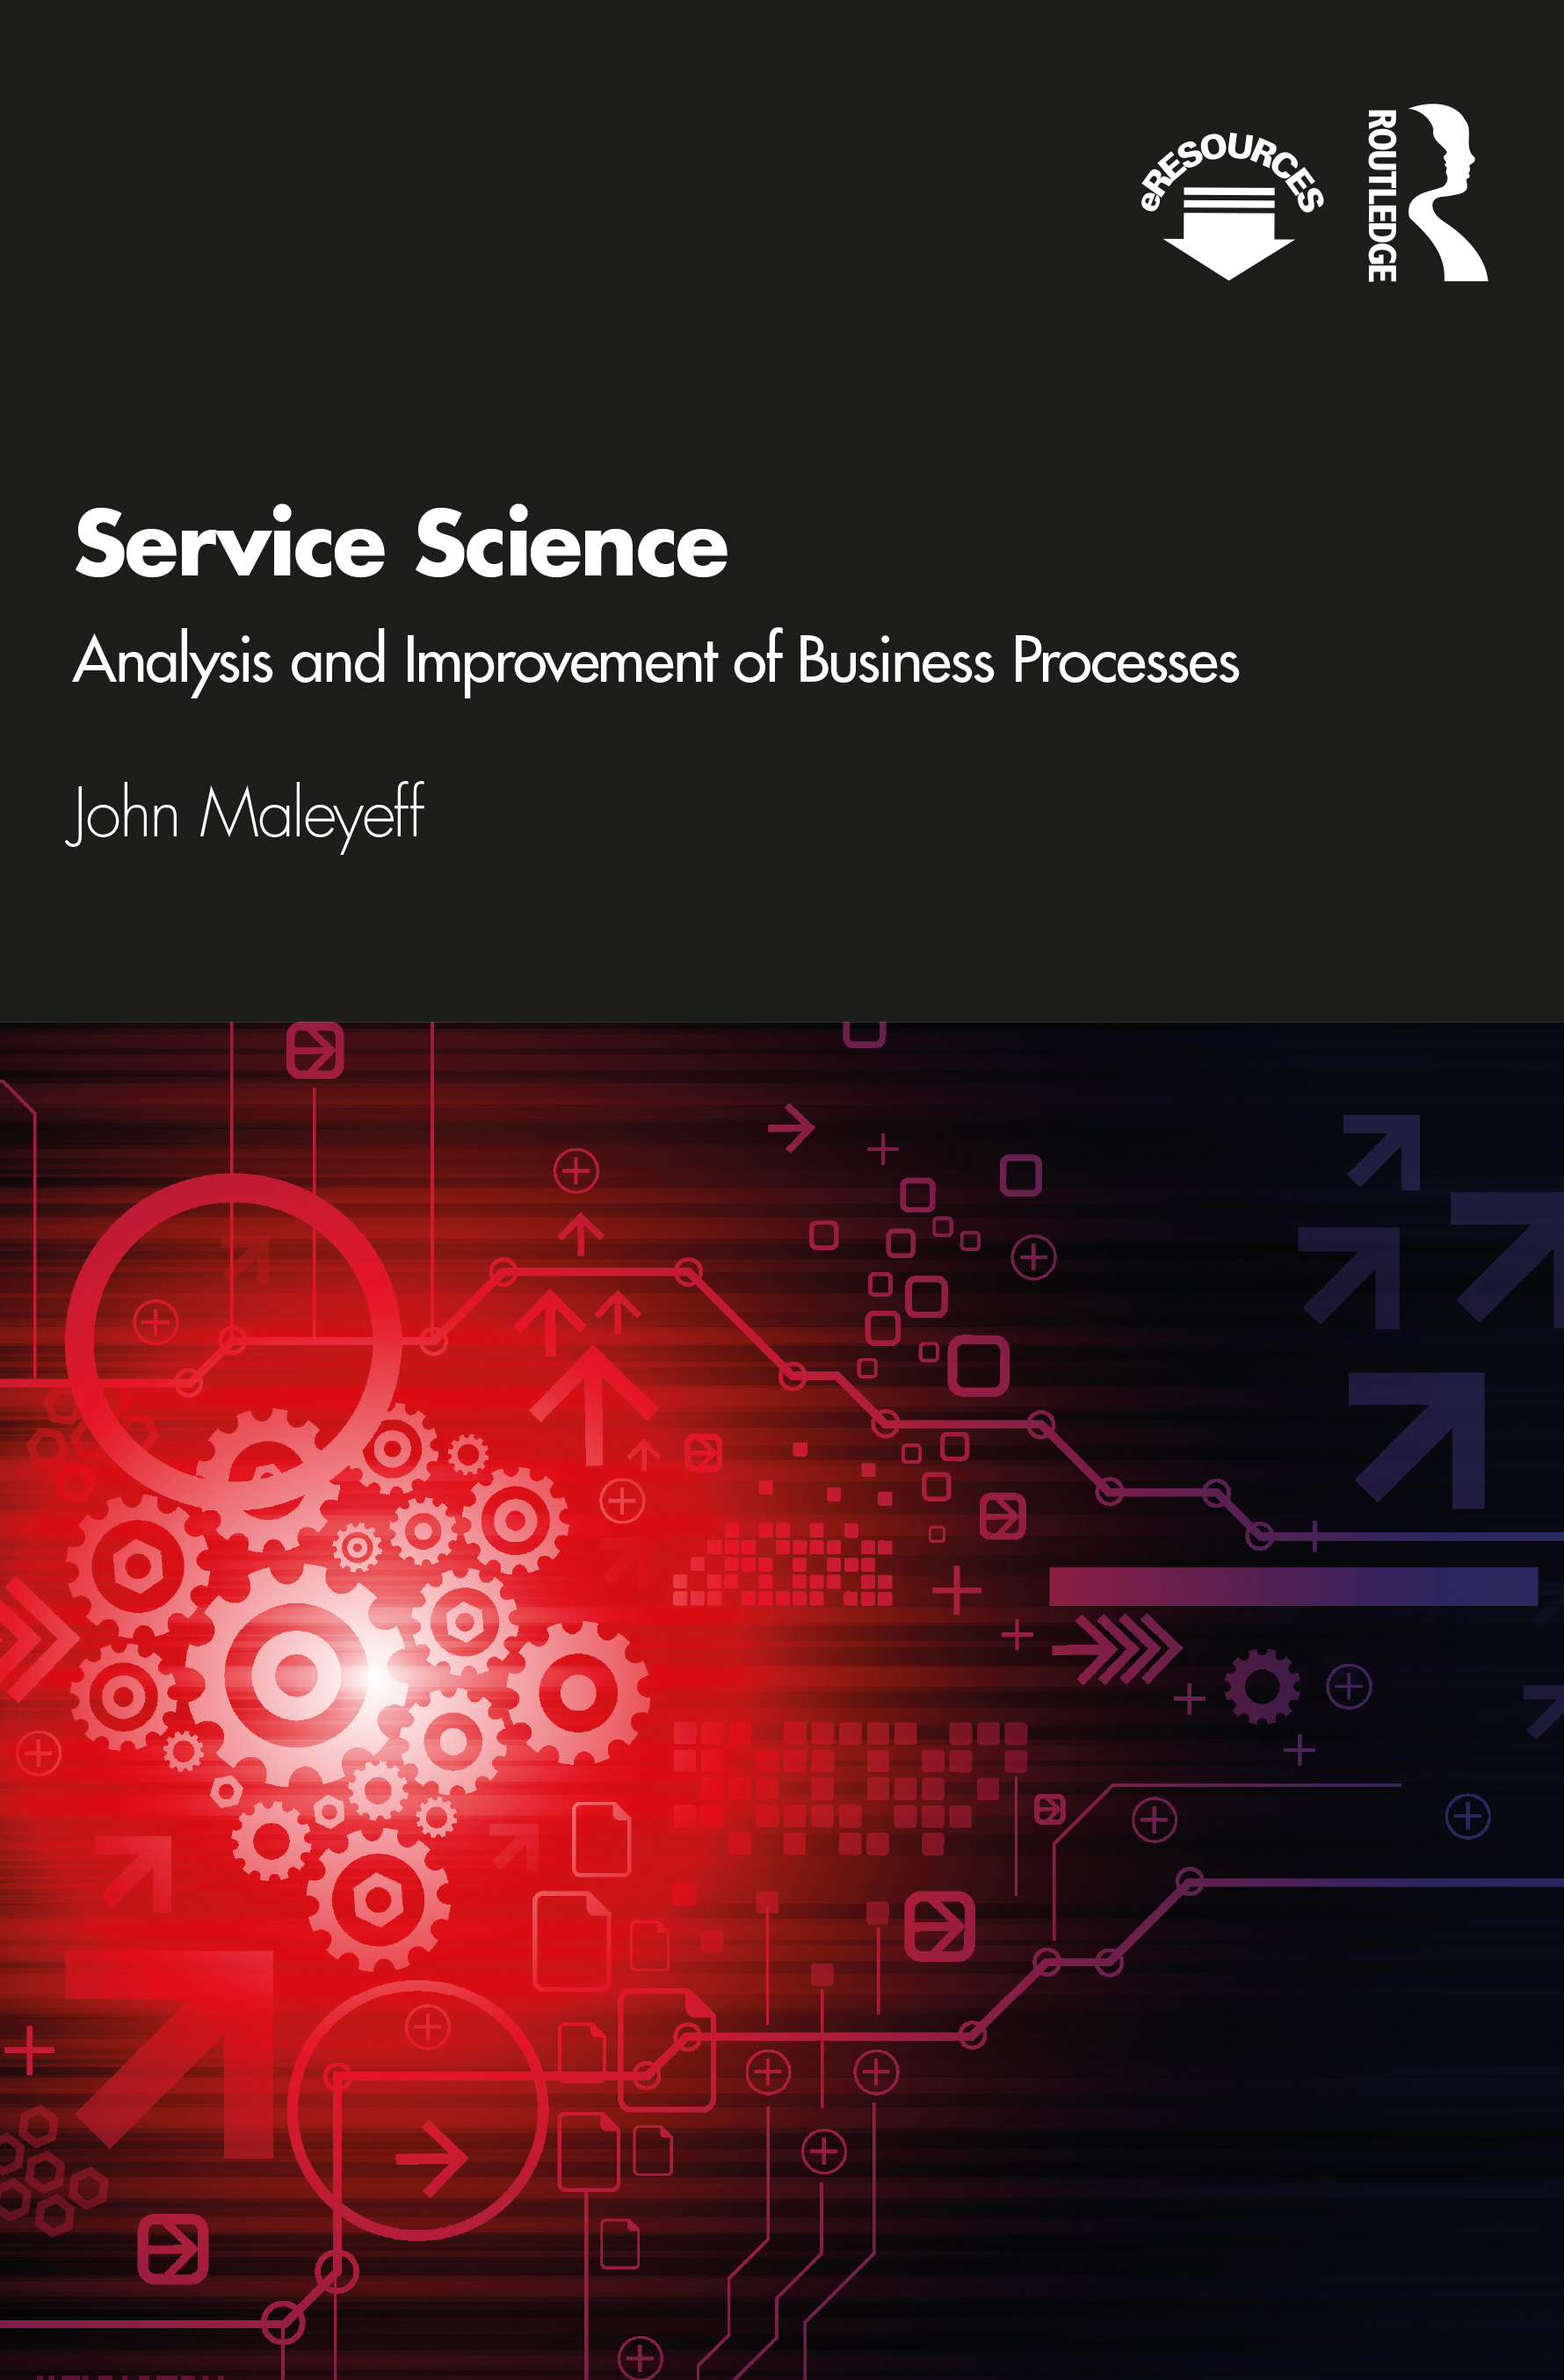 Service Science: Analysis and Improvement of Business Processes book cover